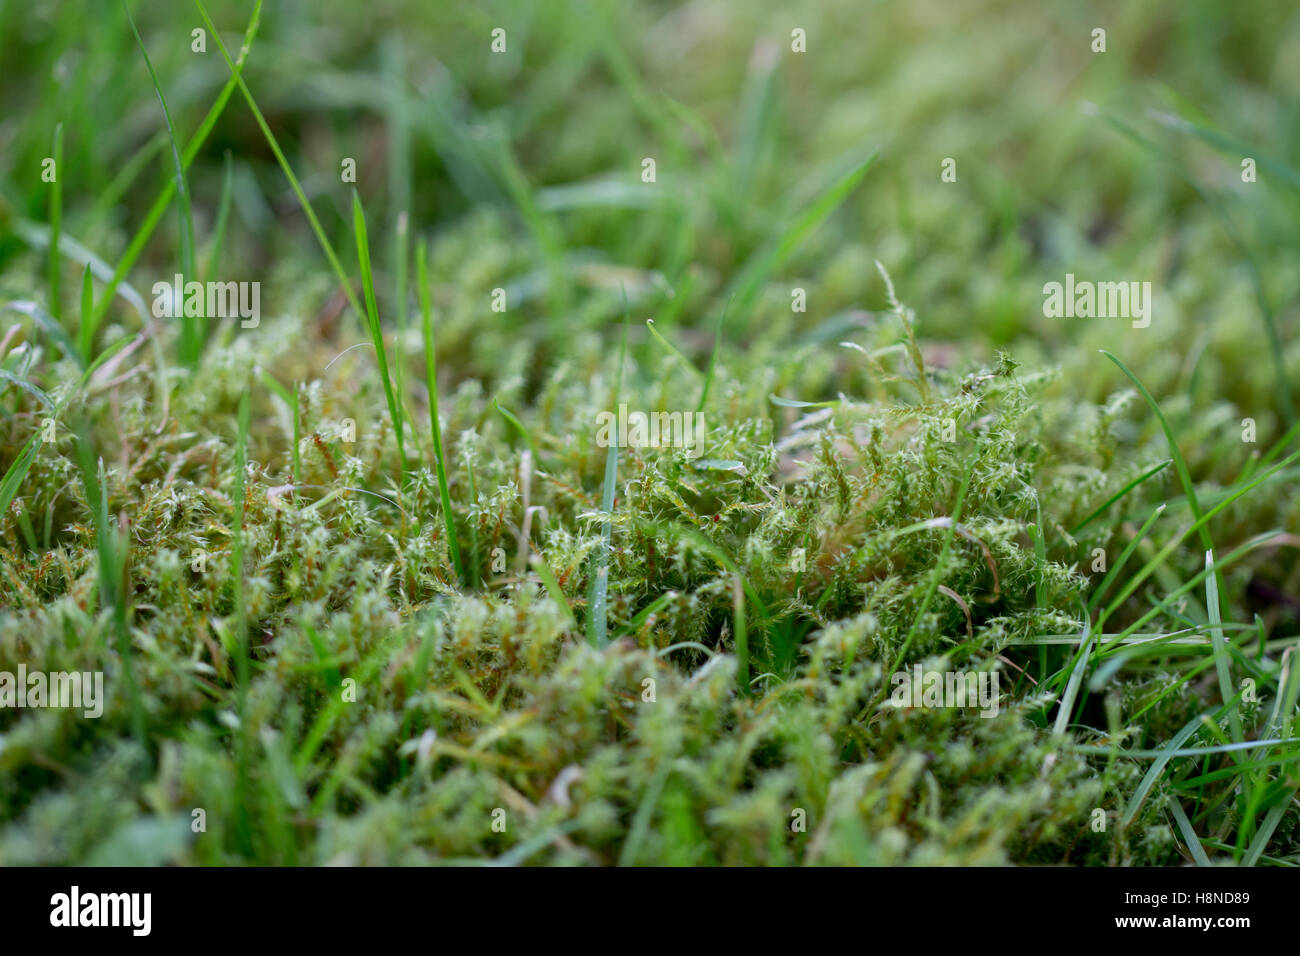 Moss growing in garden lawn - Stock Image